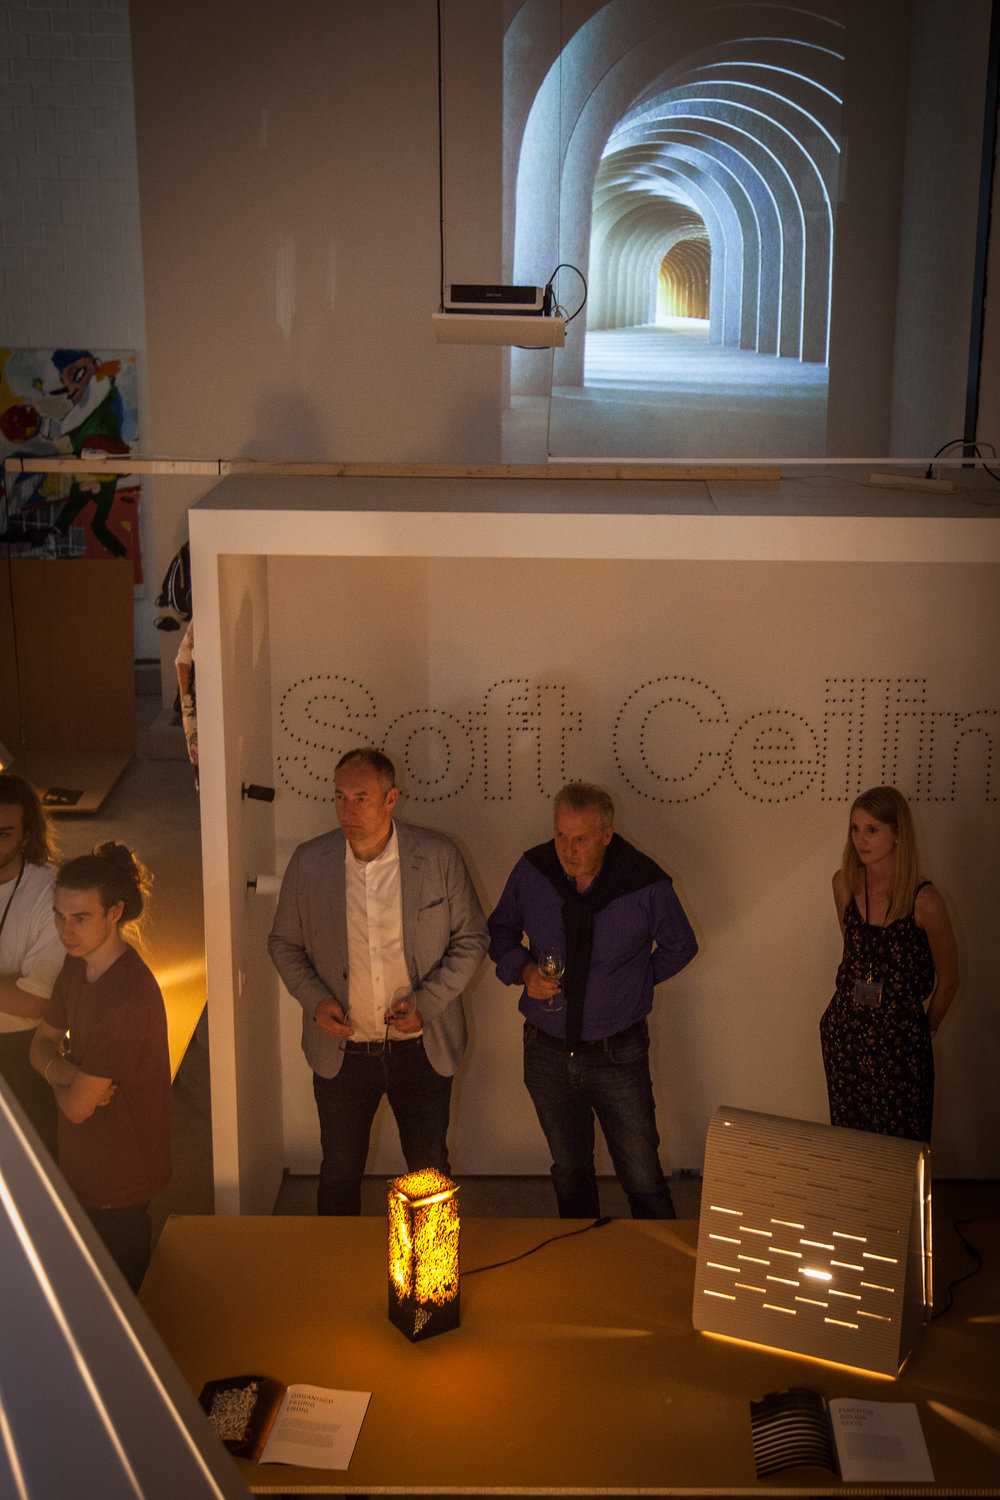 TIC_SfG_Event_Vernissage_5200.jpg